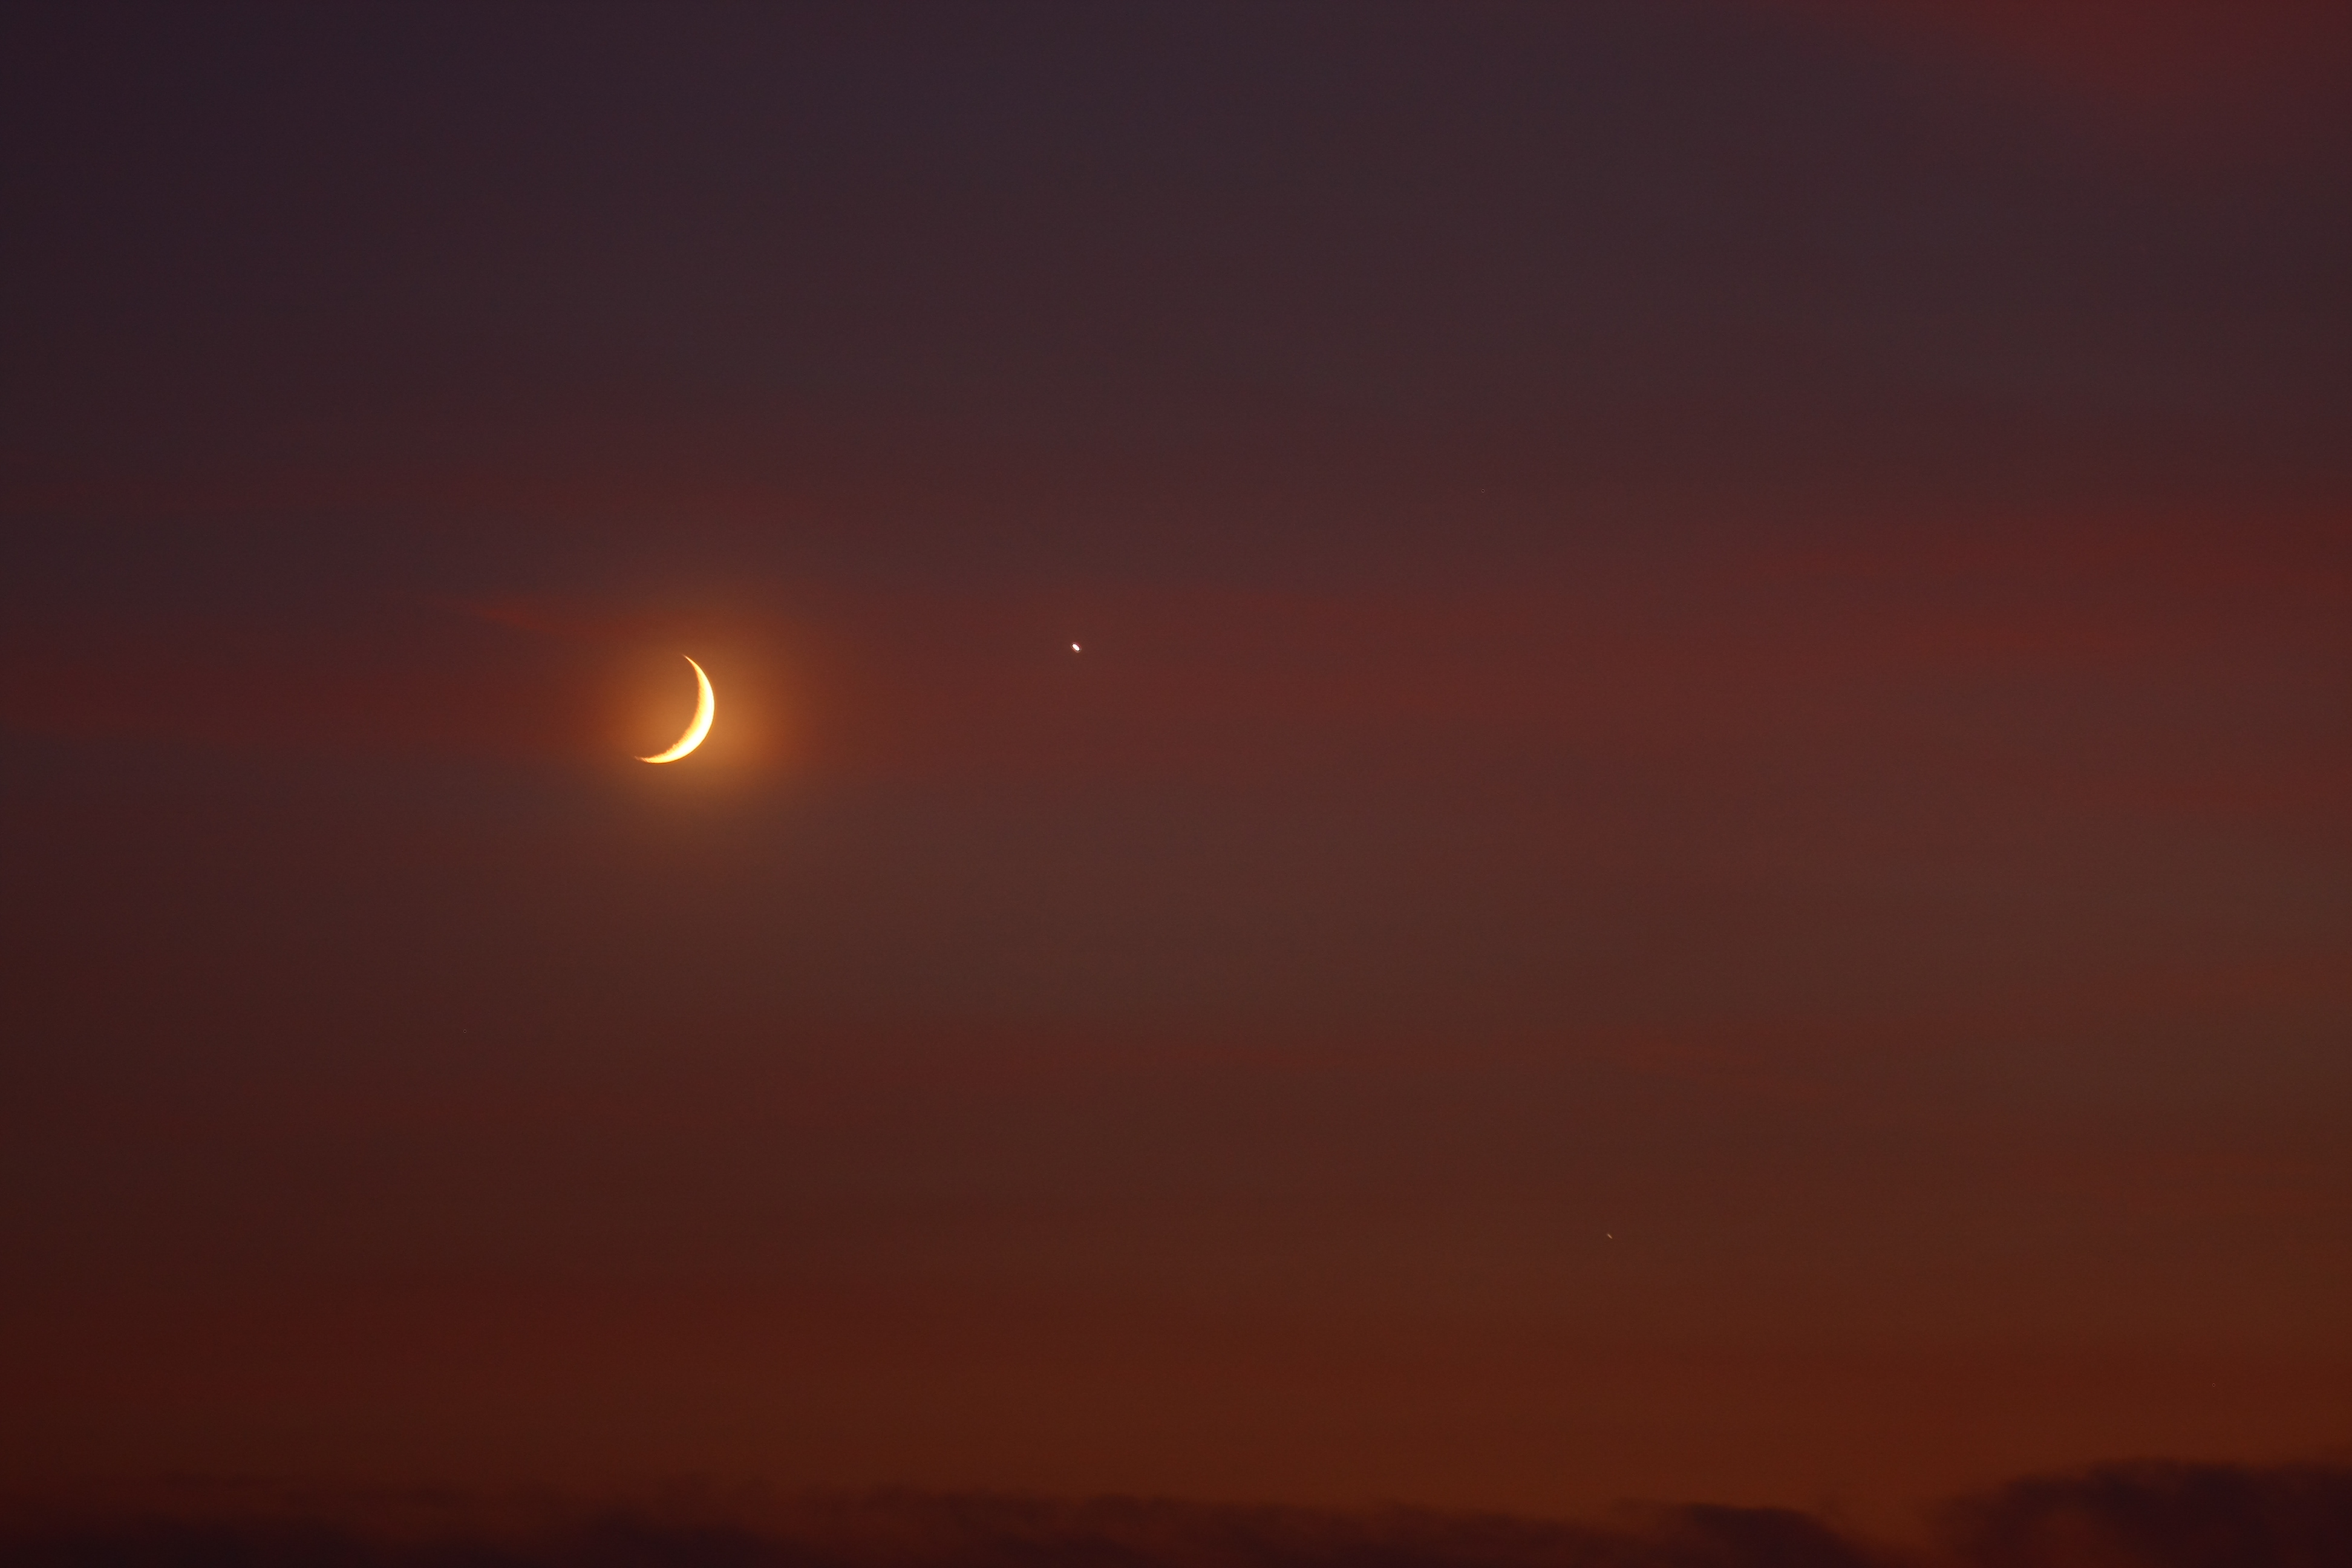 Venus and the Moon Glow Over Indiana by Ben Nevills